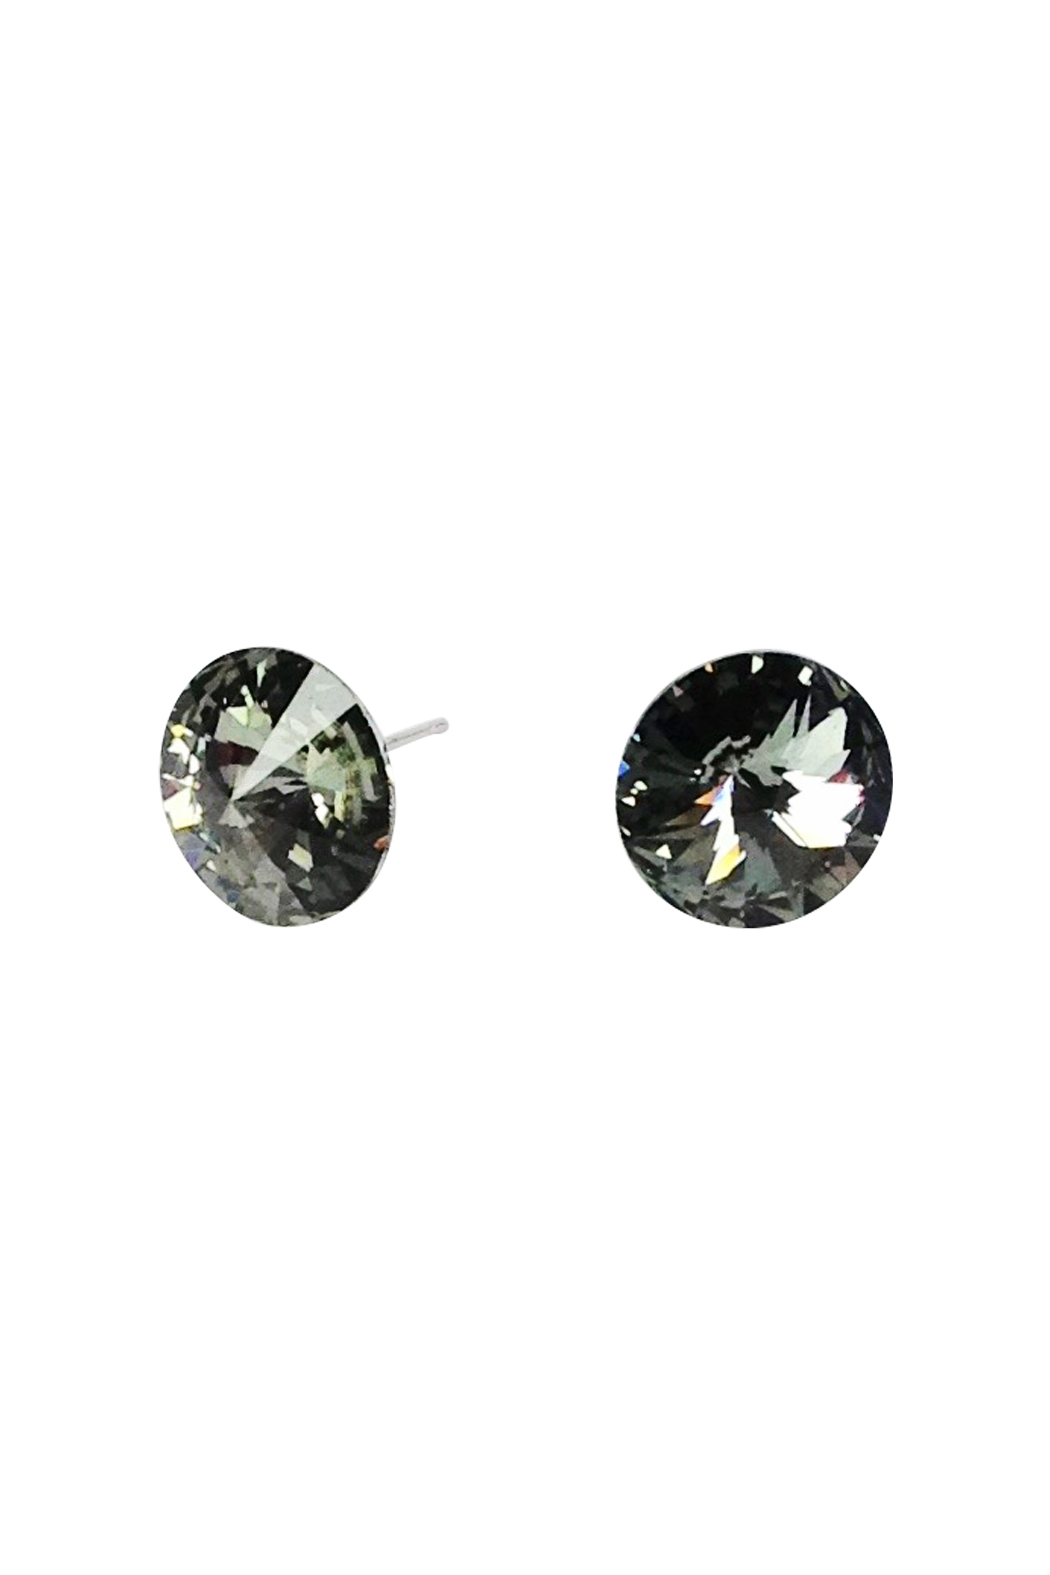 Black Diamond Swarovski Stud Earrings